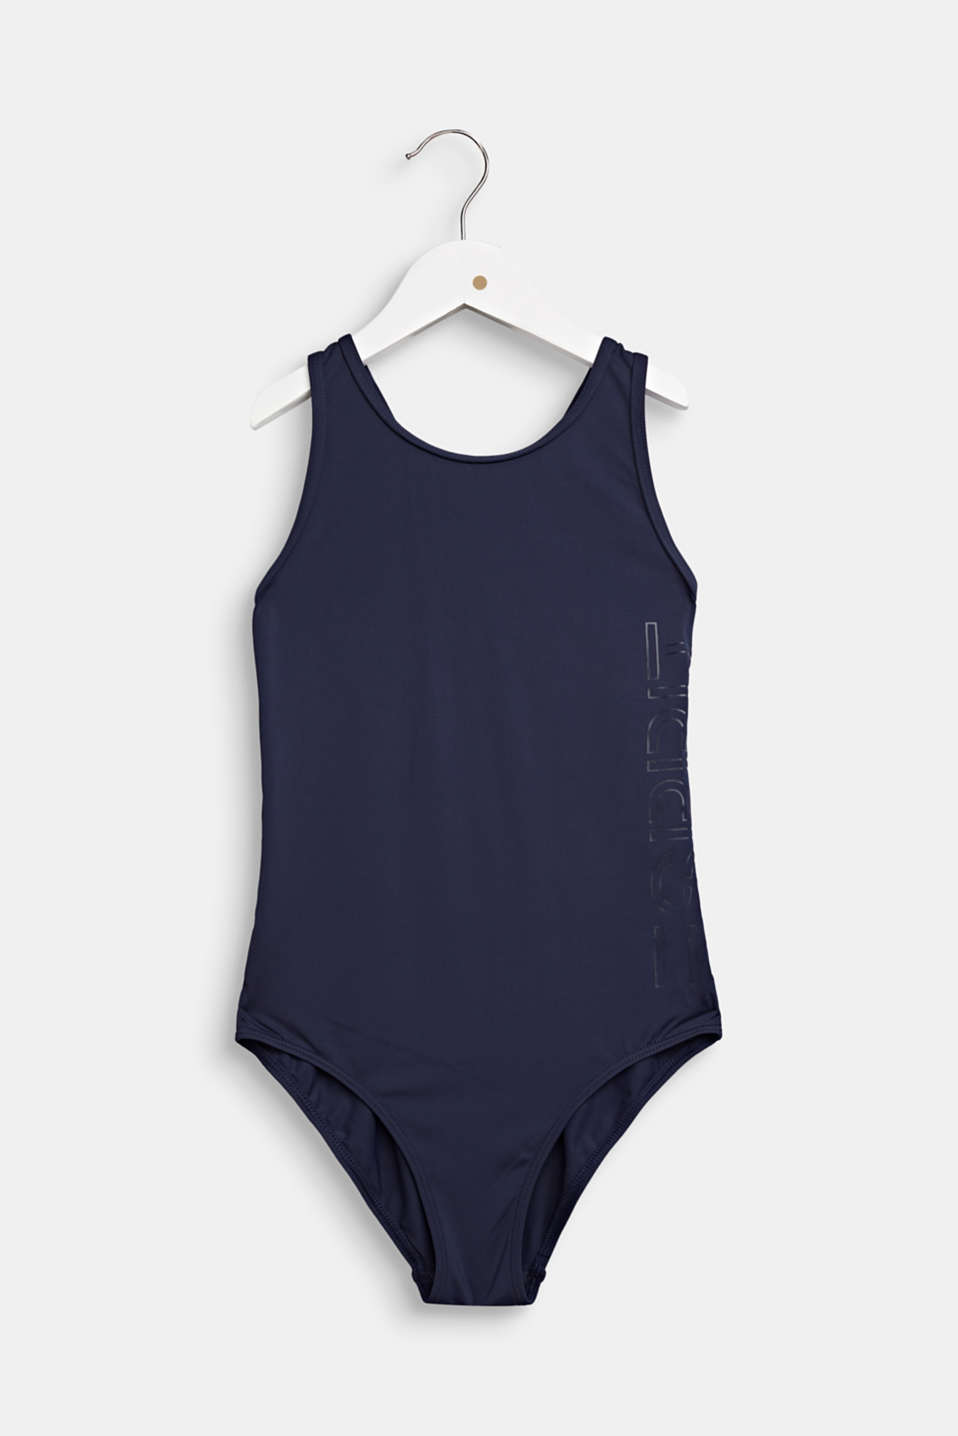 Esprit - Swimsuit with cross-over straps and a logo print